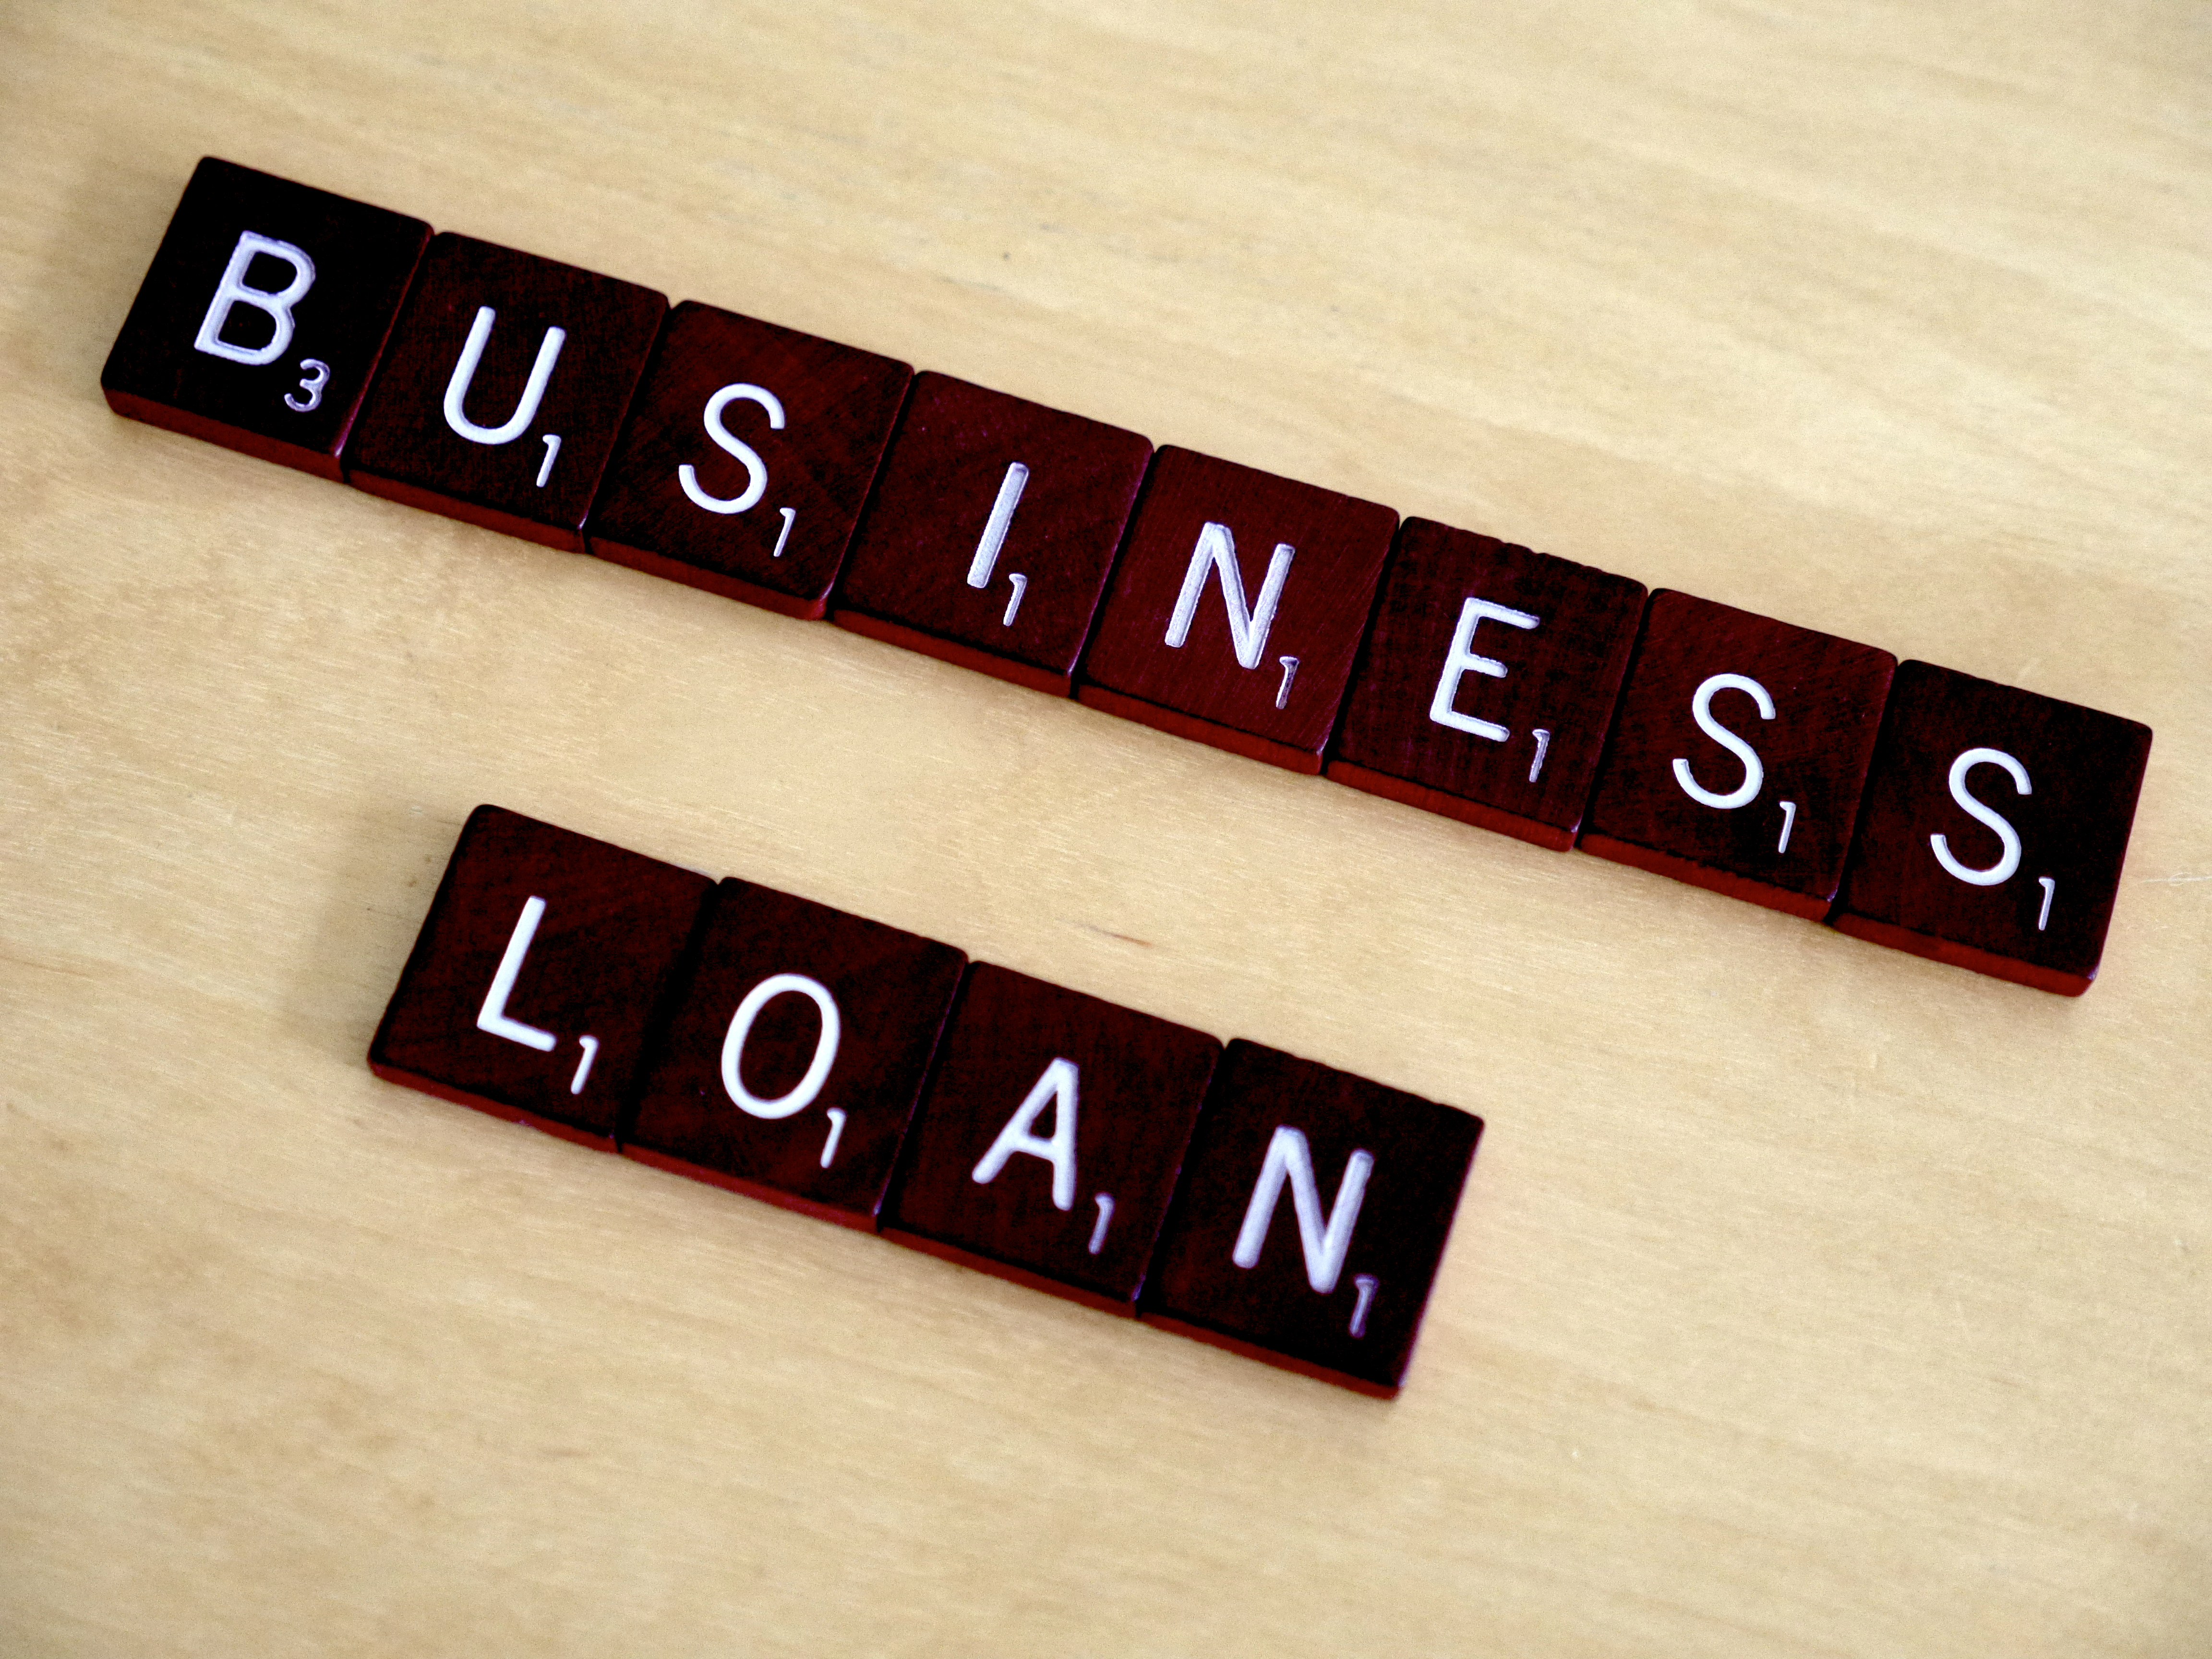 small business improvement – payment processing news